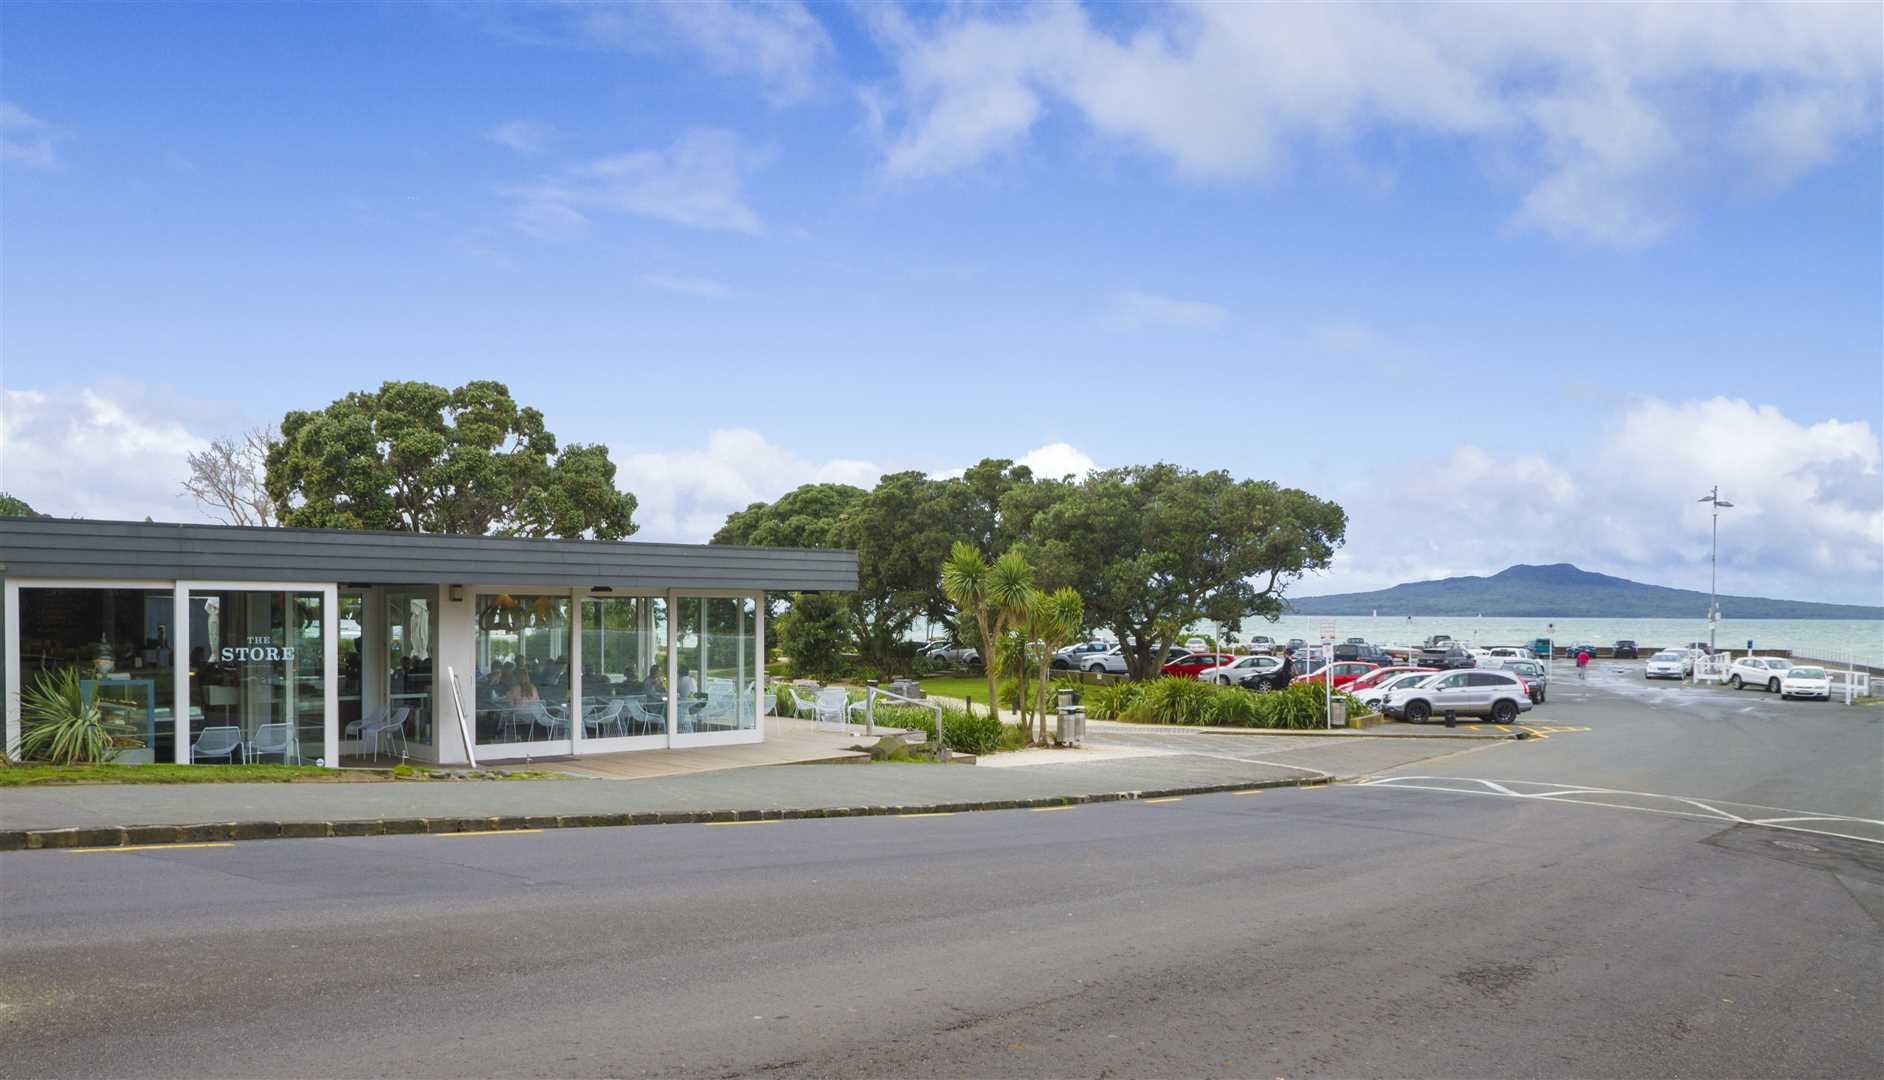 Walking distance to Takapuna cafes, restaurants and beaches